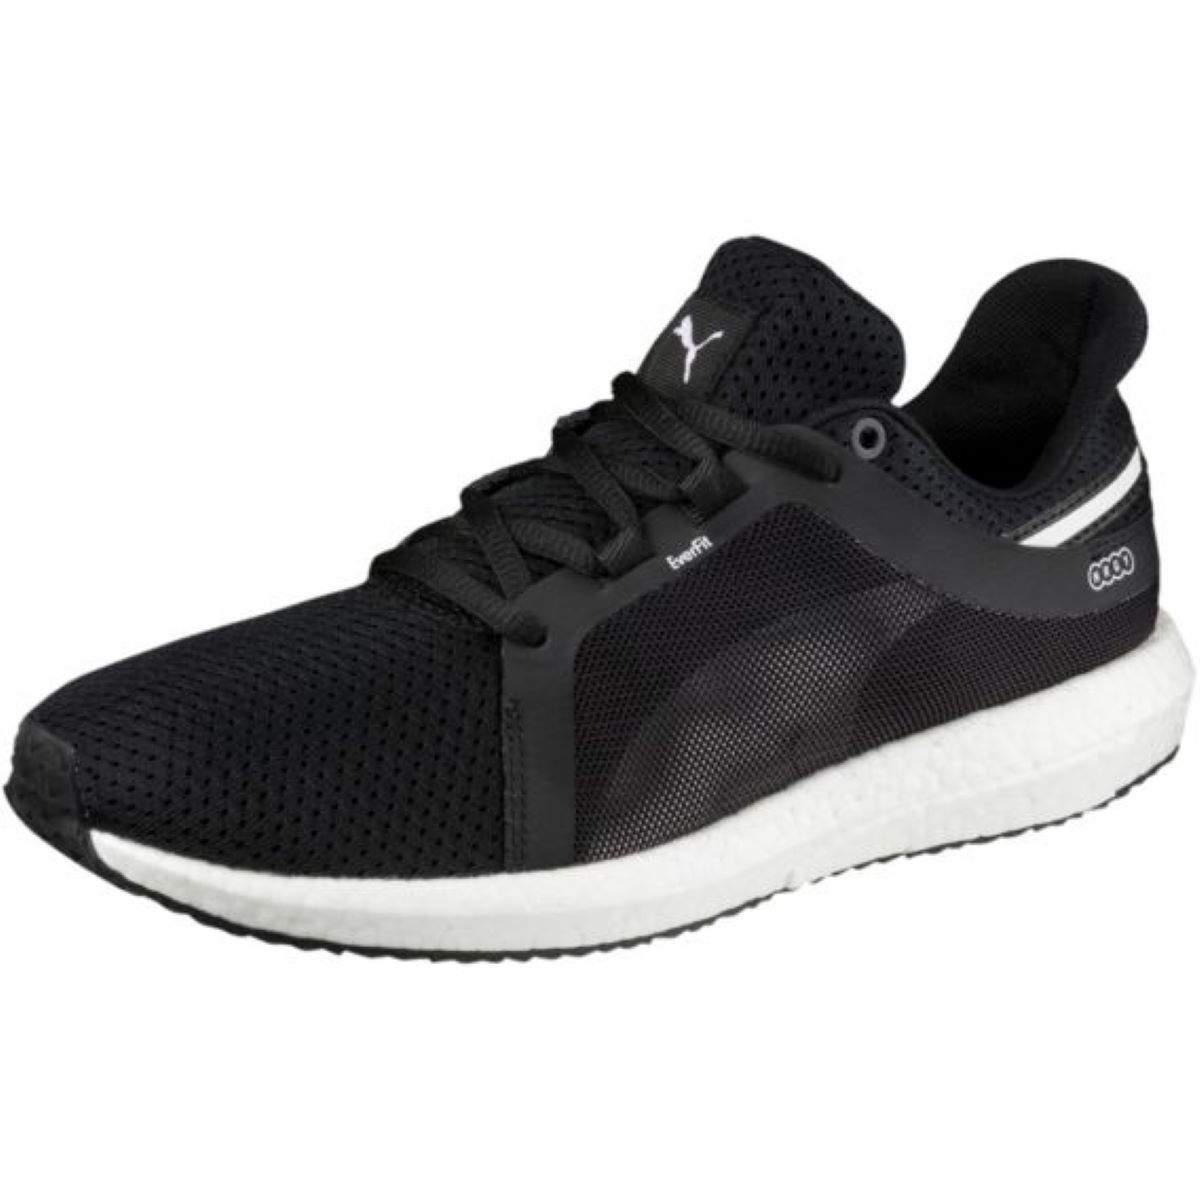 Chaussures Femme Puma Mega NRGY Turbo 2 - UK 8.5 black-white